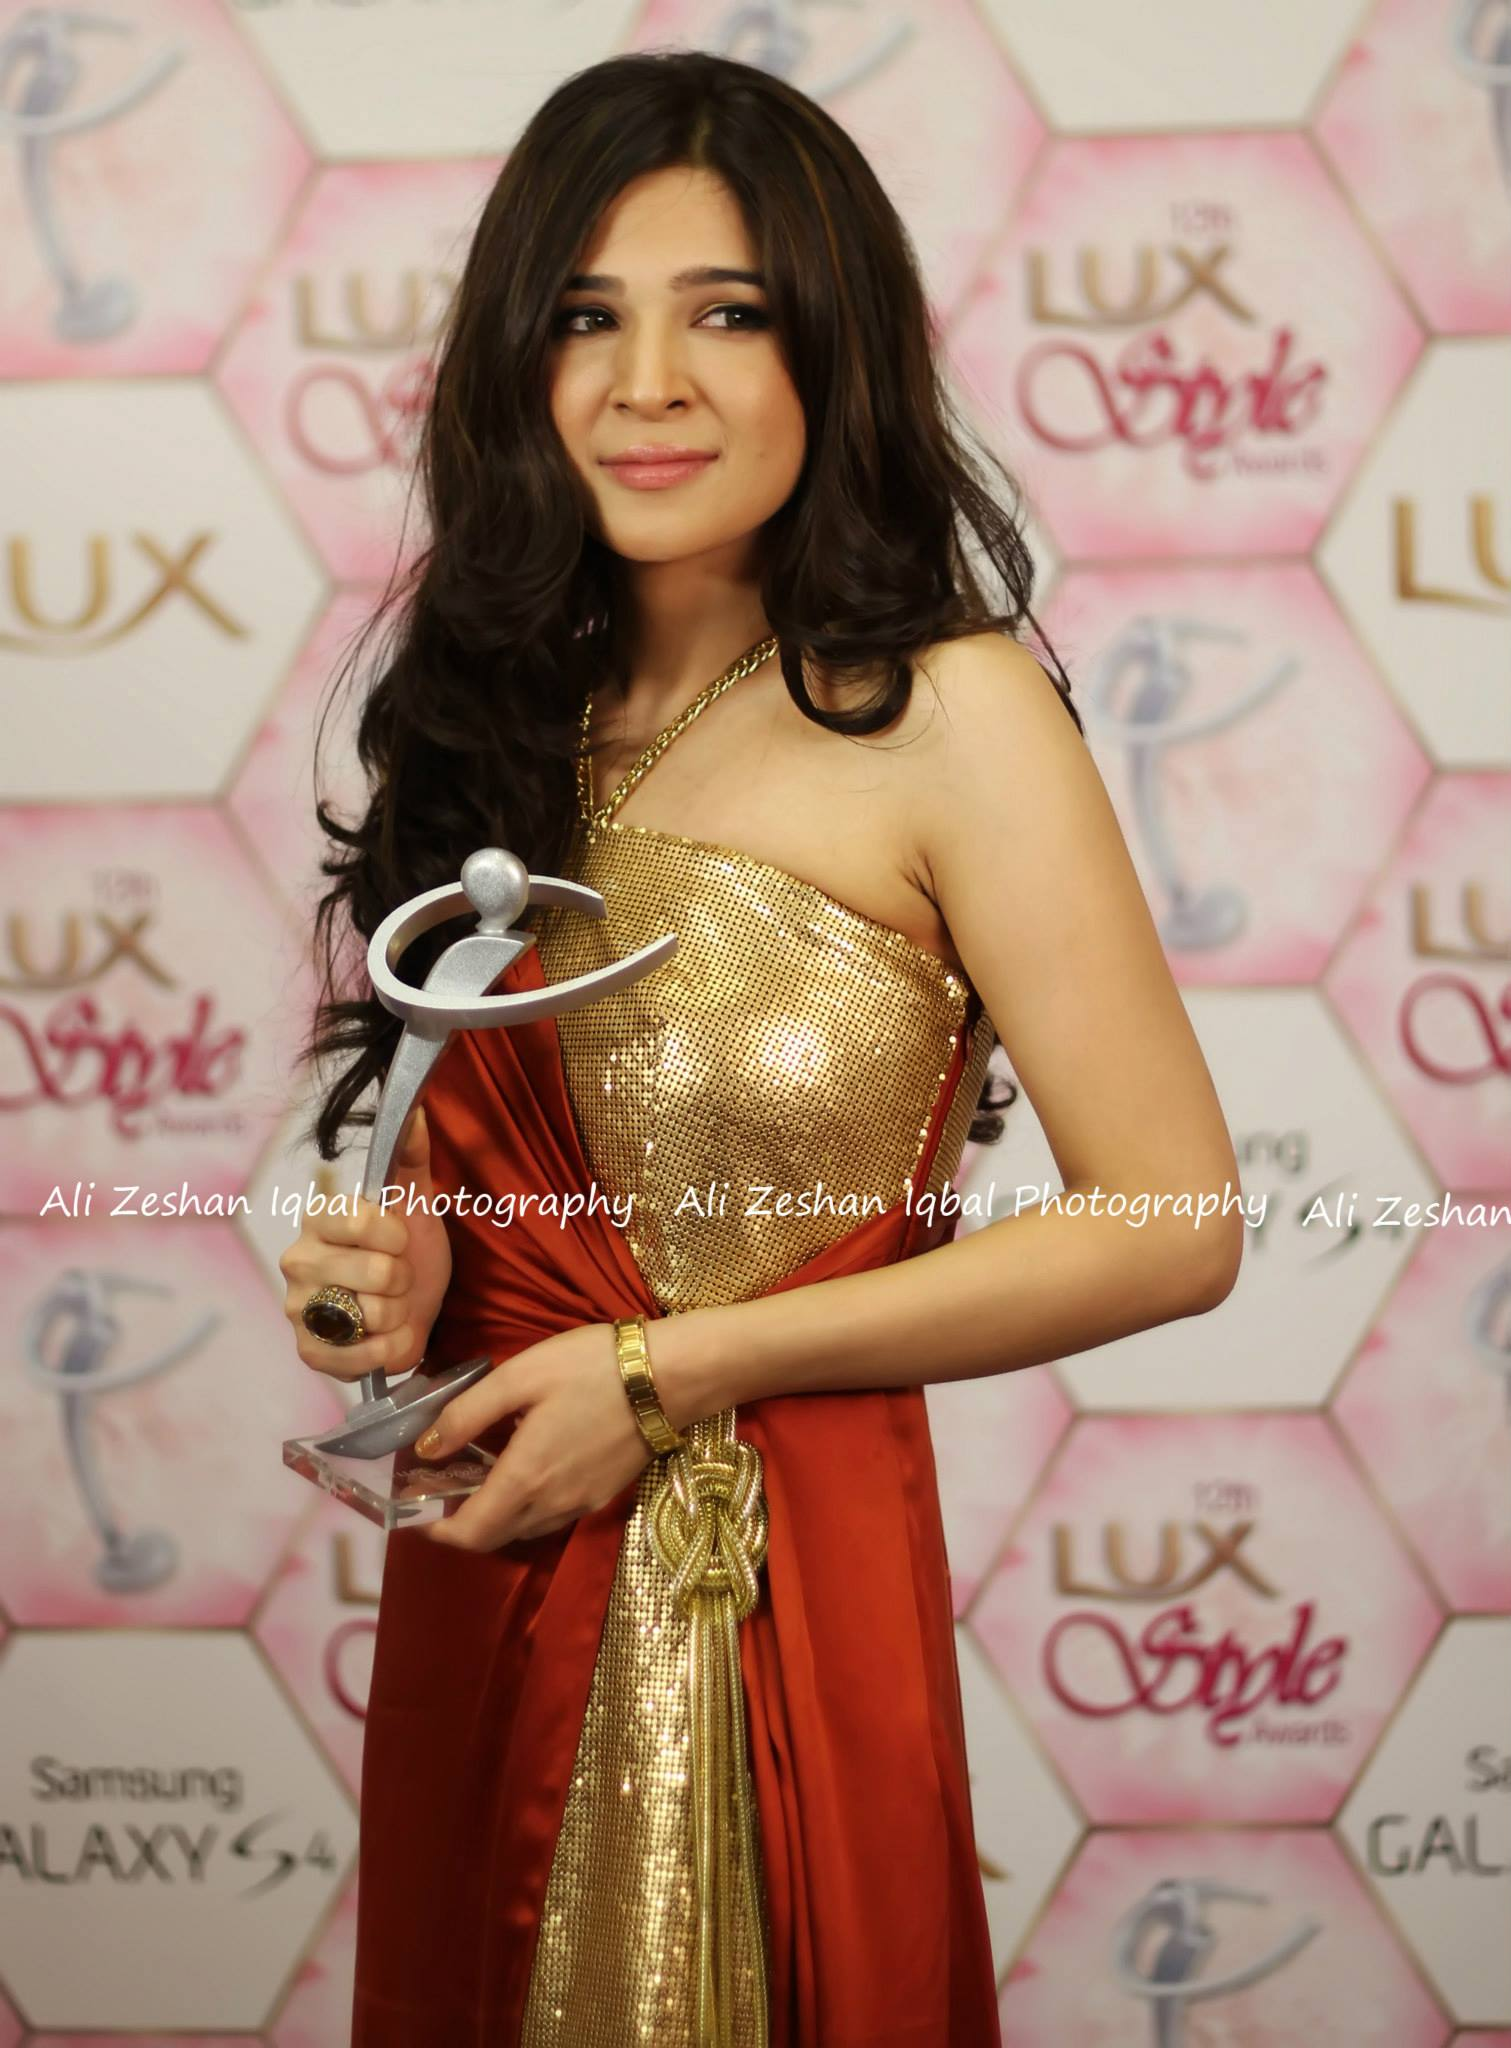 Lux Style Awards 2013 - Picture - 28